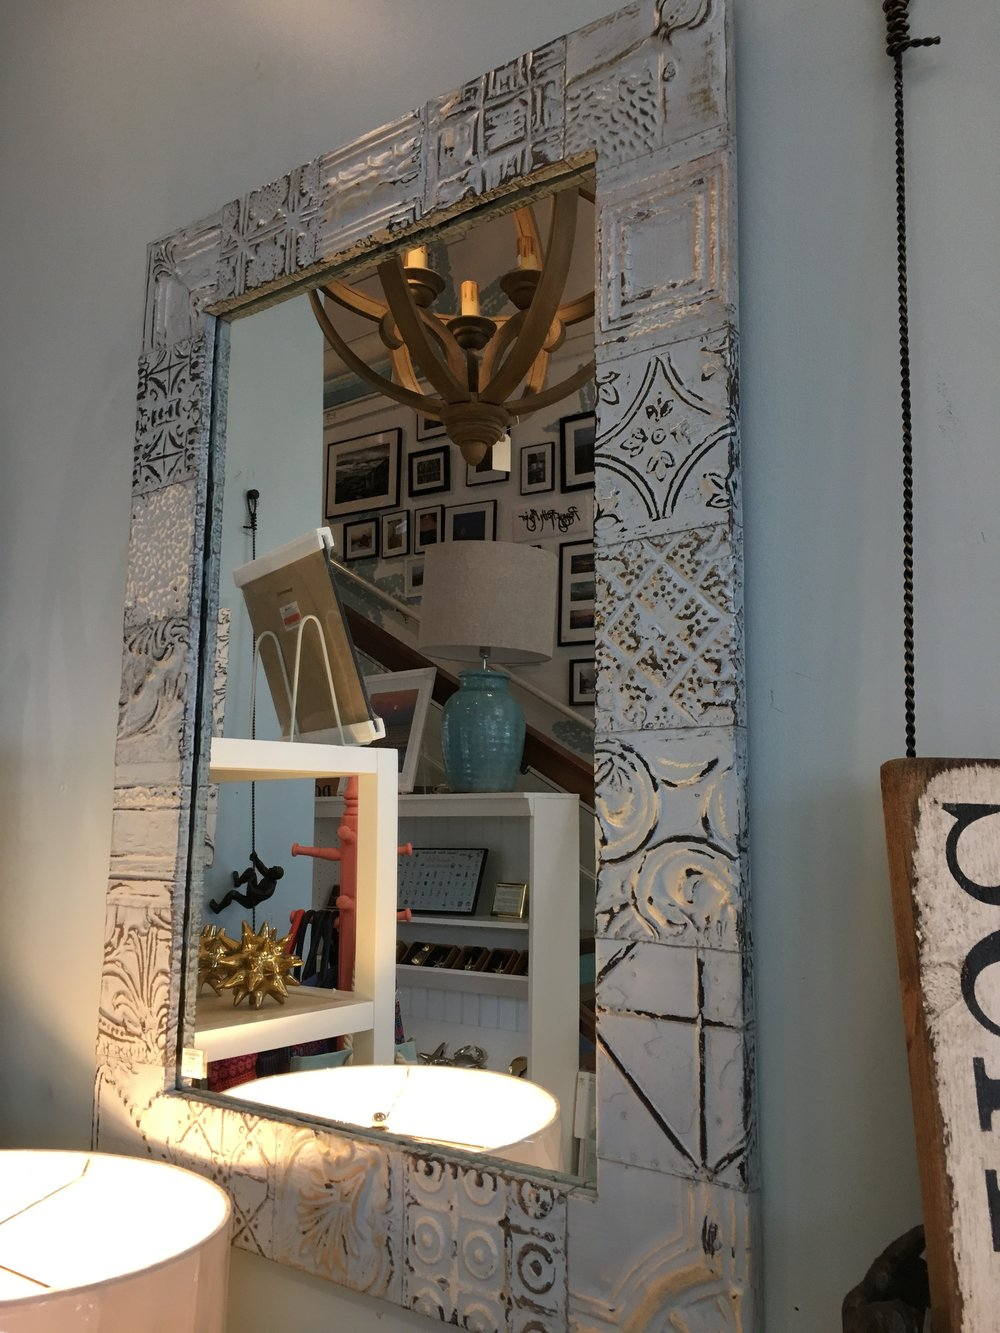 27288 - 29x40 Tin Mirror - $460 - Received